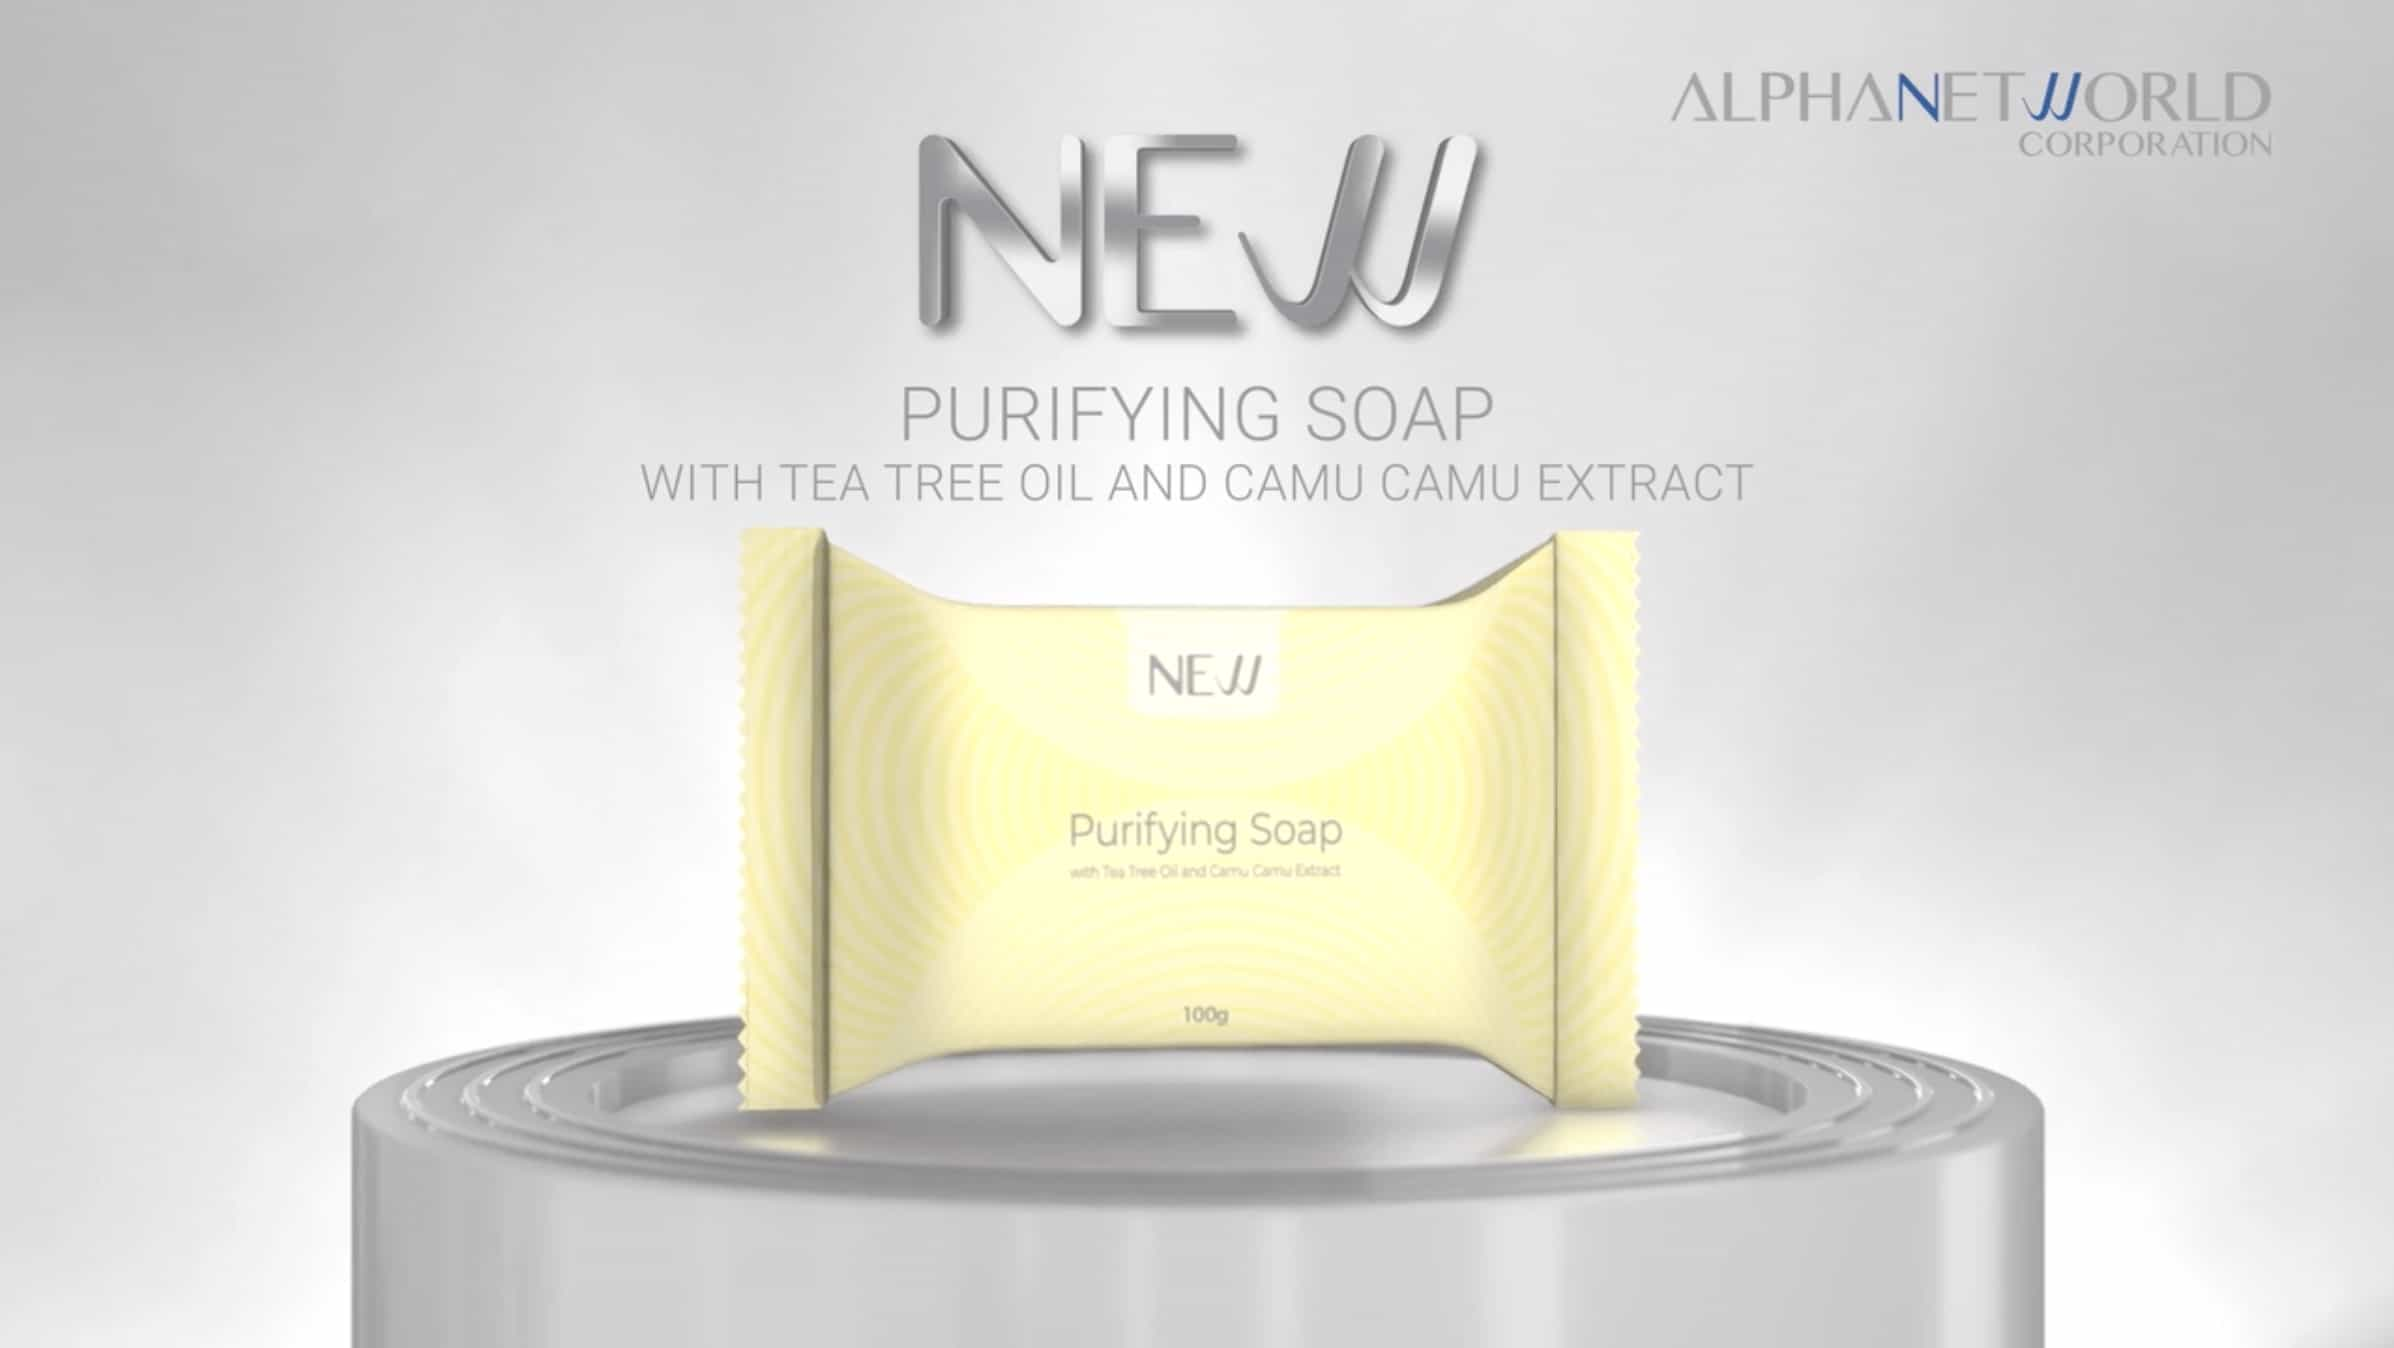 NEW Purifying Soap